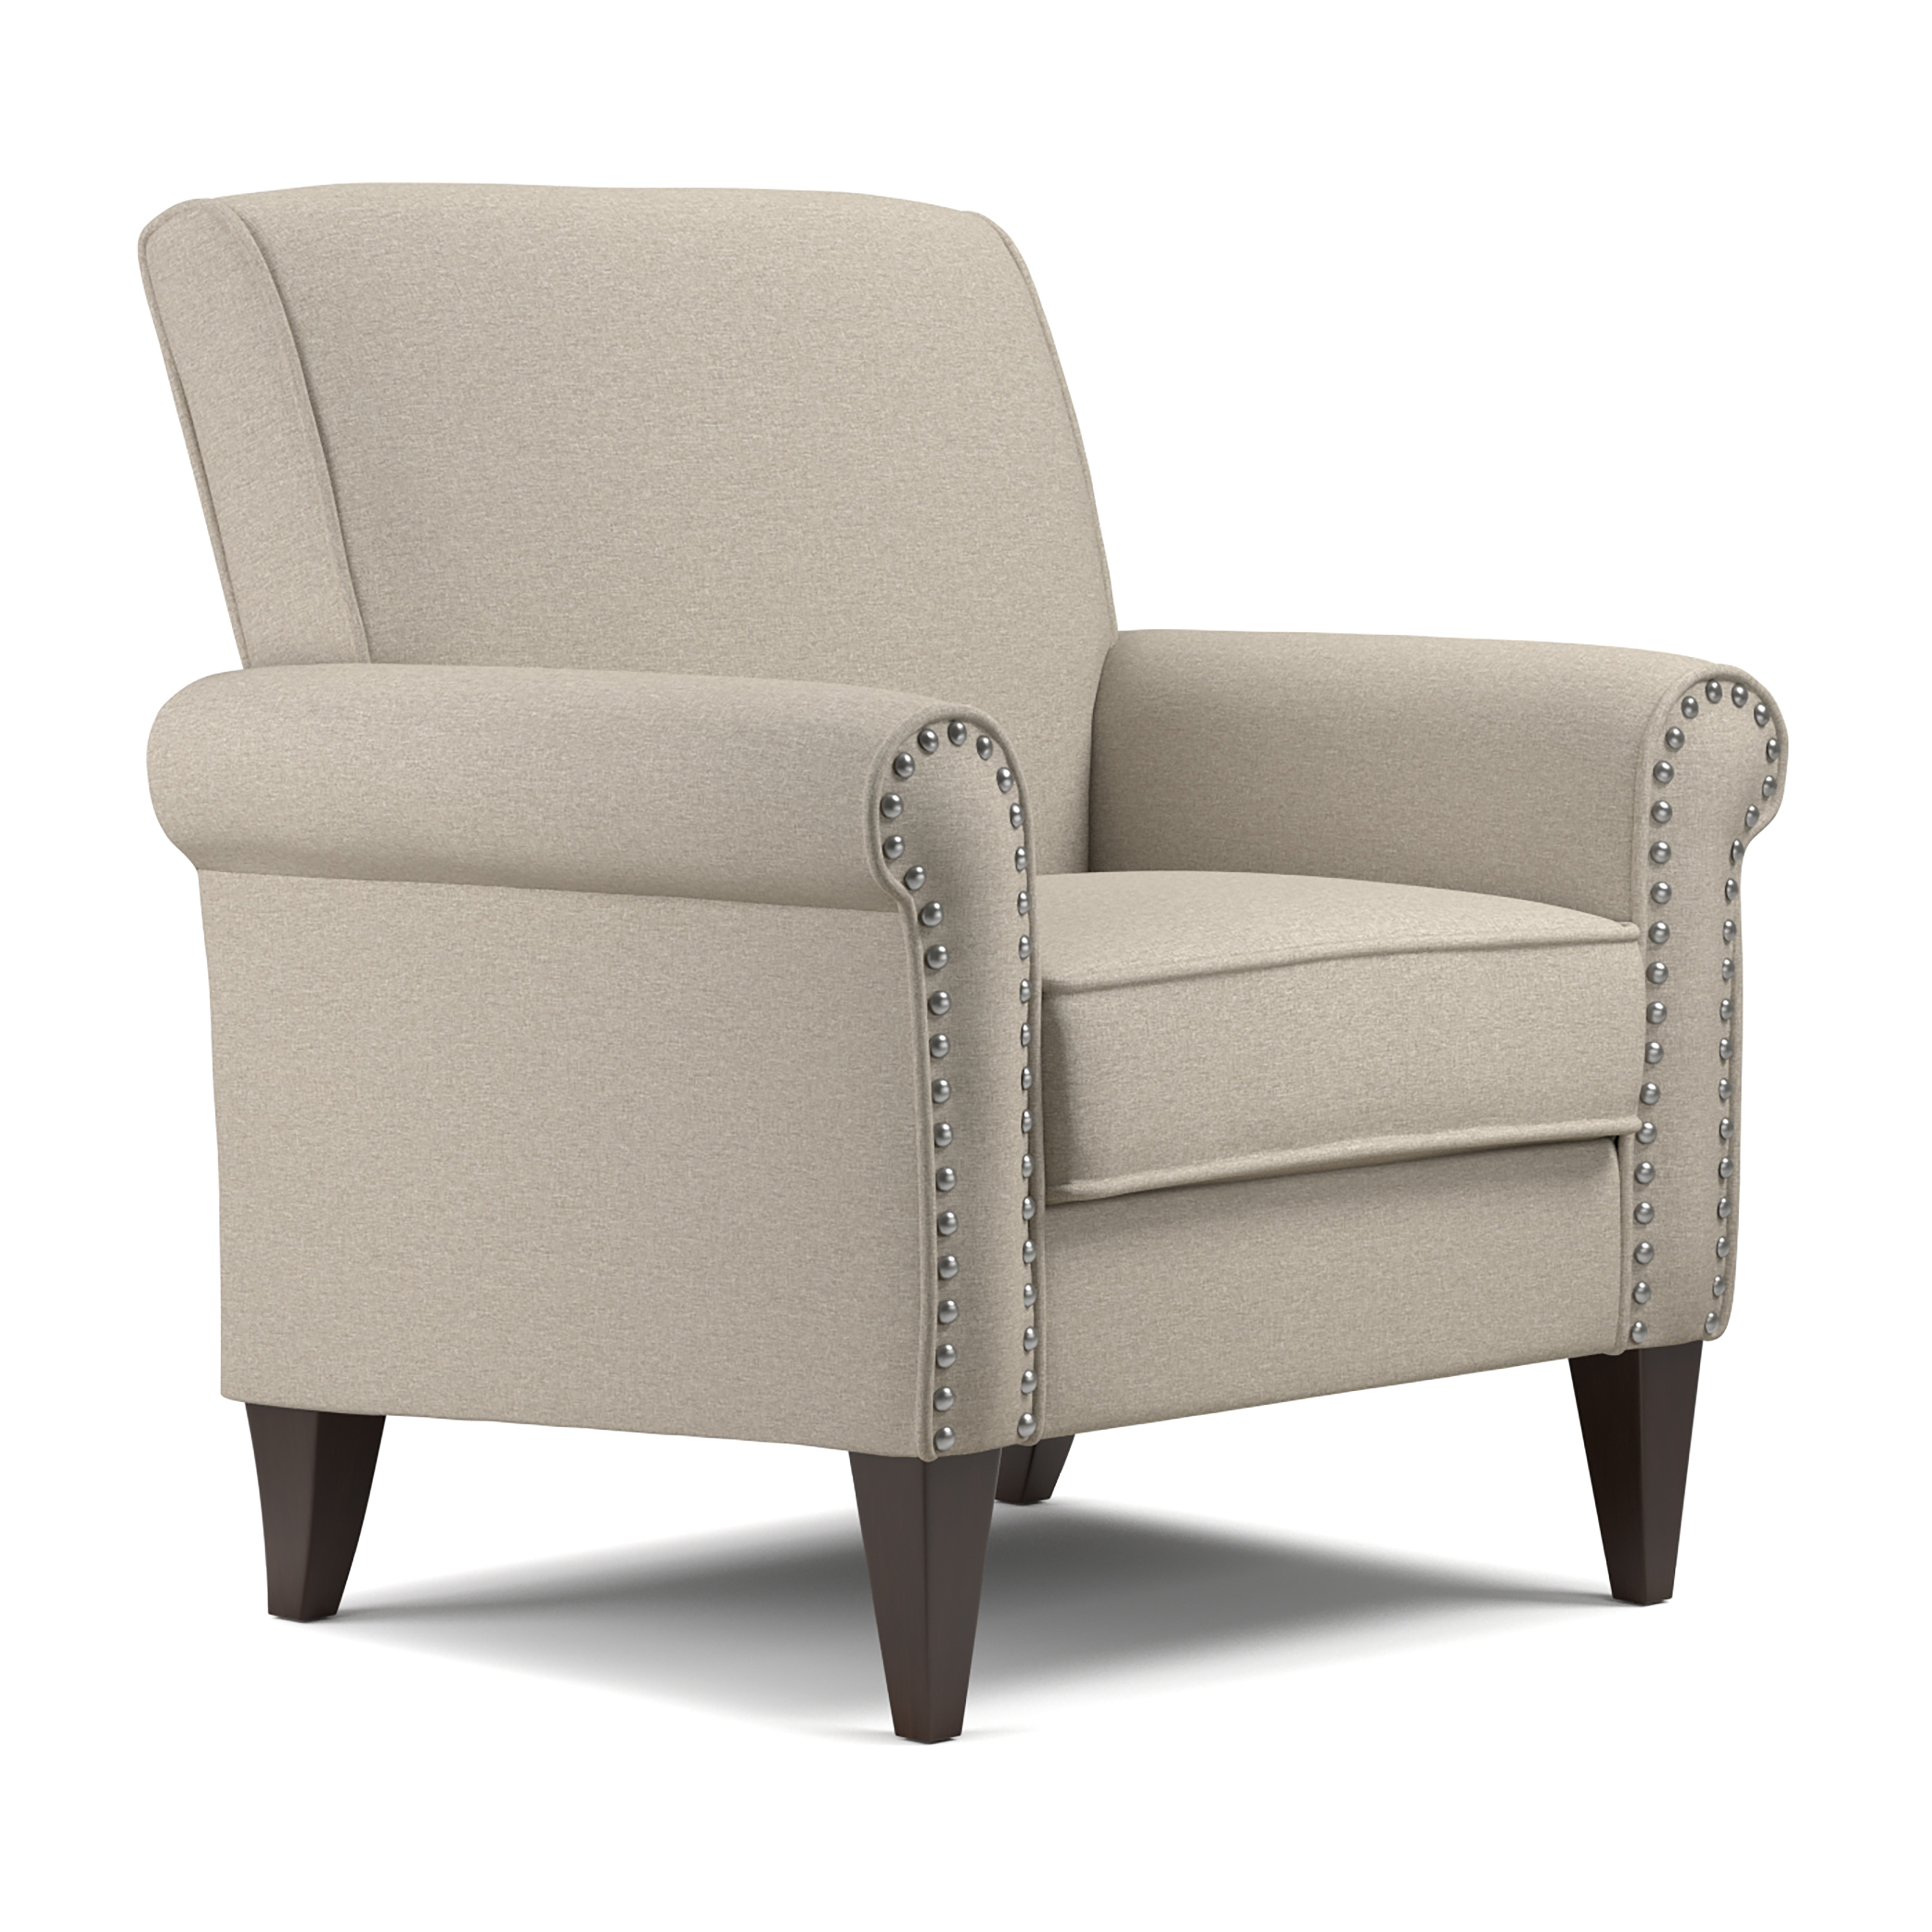 Jean Arm Chair in Linen, Multiple Colors